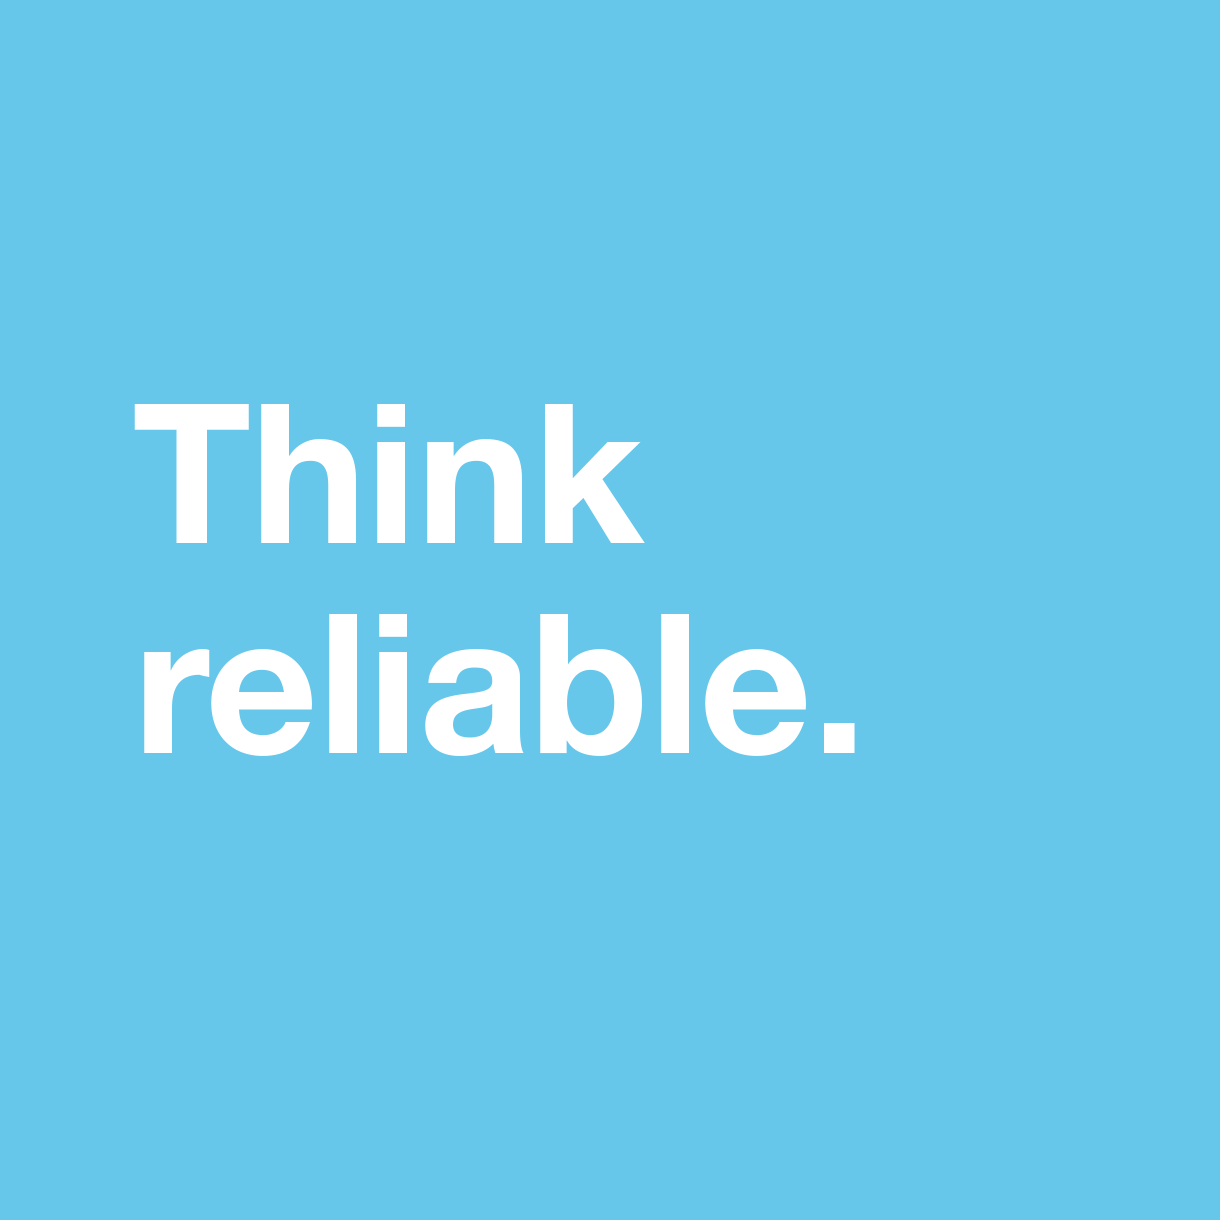 Think reliable.